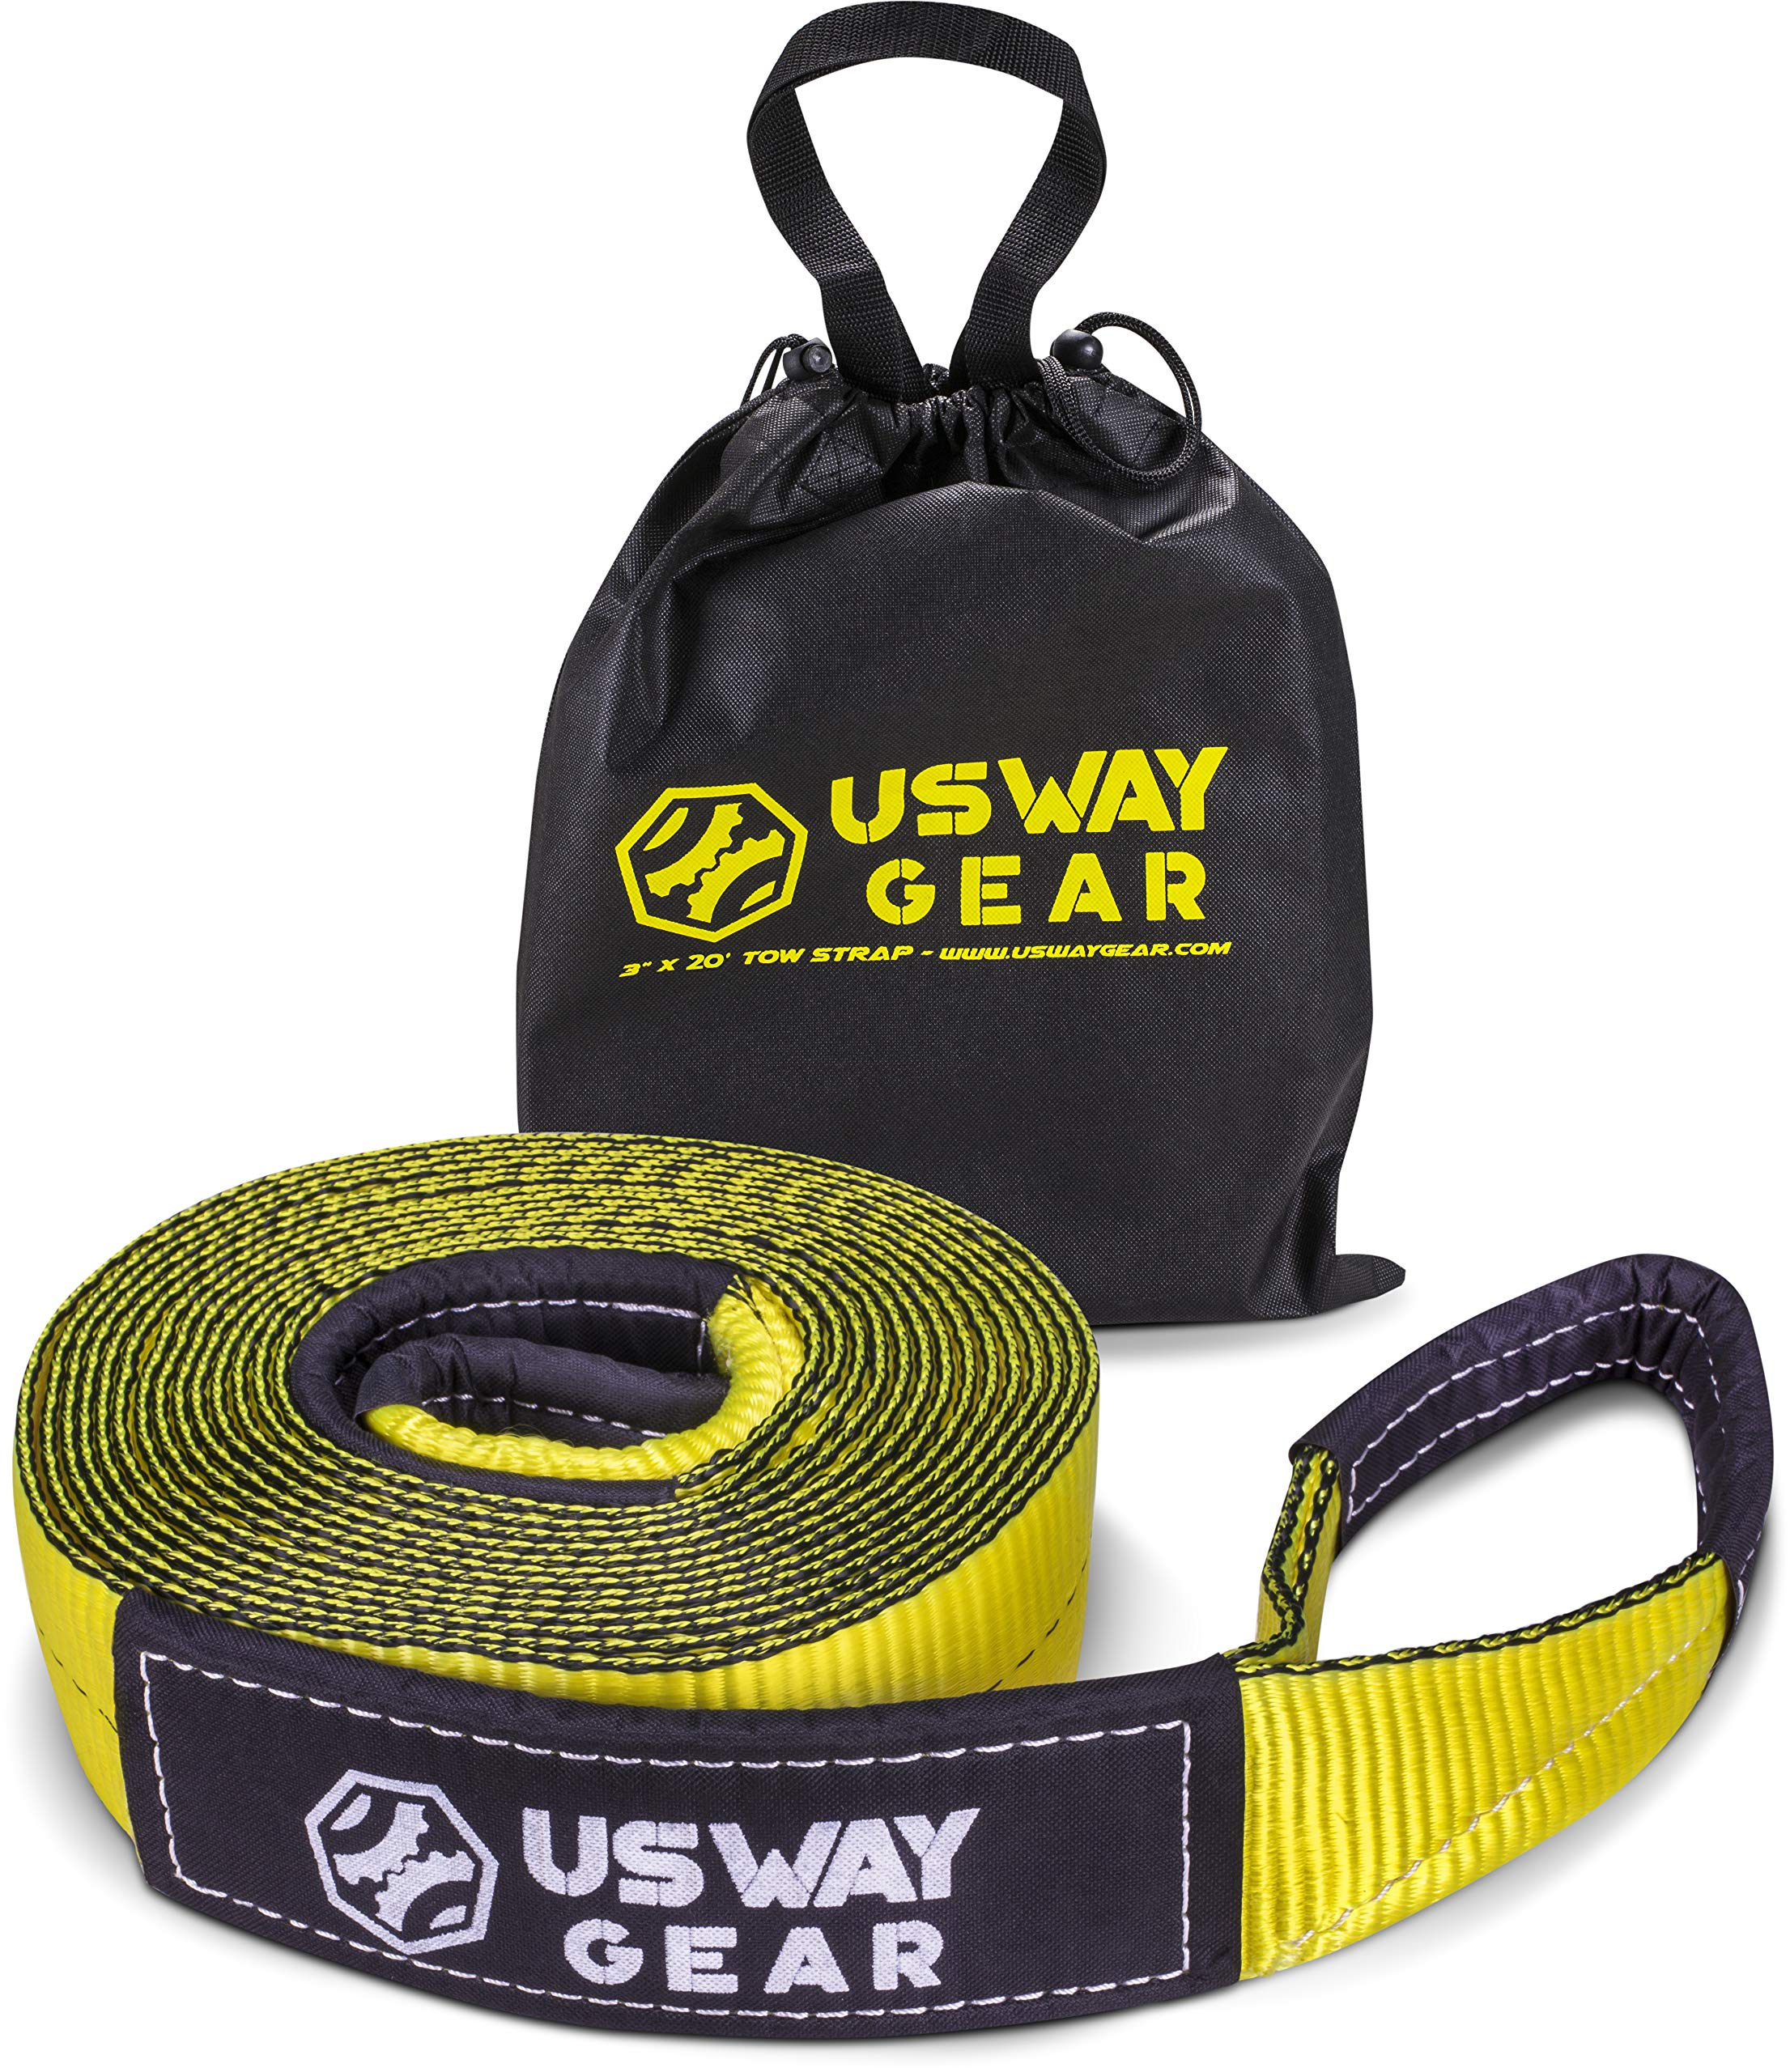 USWAY GEAR 3'' x 20' Recovery Tow Strap - 30.000 LBS (15 US TON) Rated Capacity Heavy Duty Vehicle Tow Strap with Triple Reinforced Loops + Protective Sleeves + Free Storage Bag | Emergency Towing Rope by USWAY GEAR